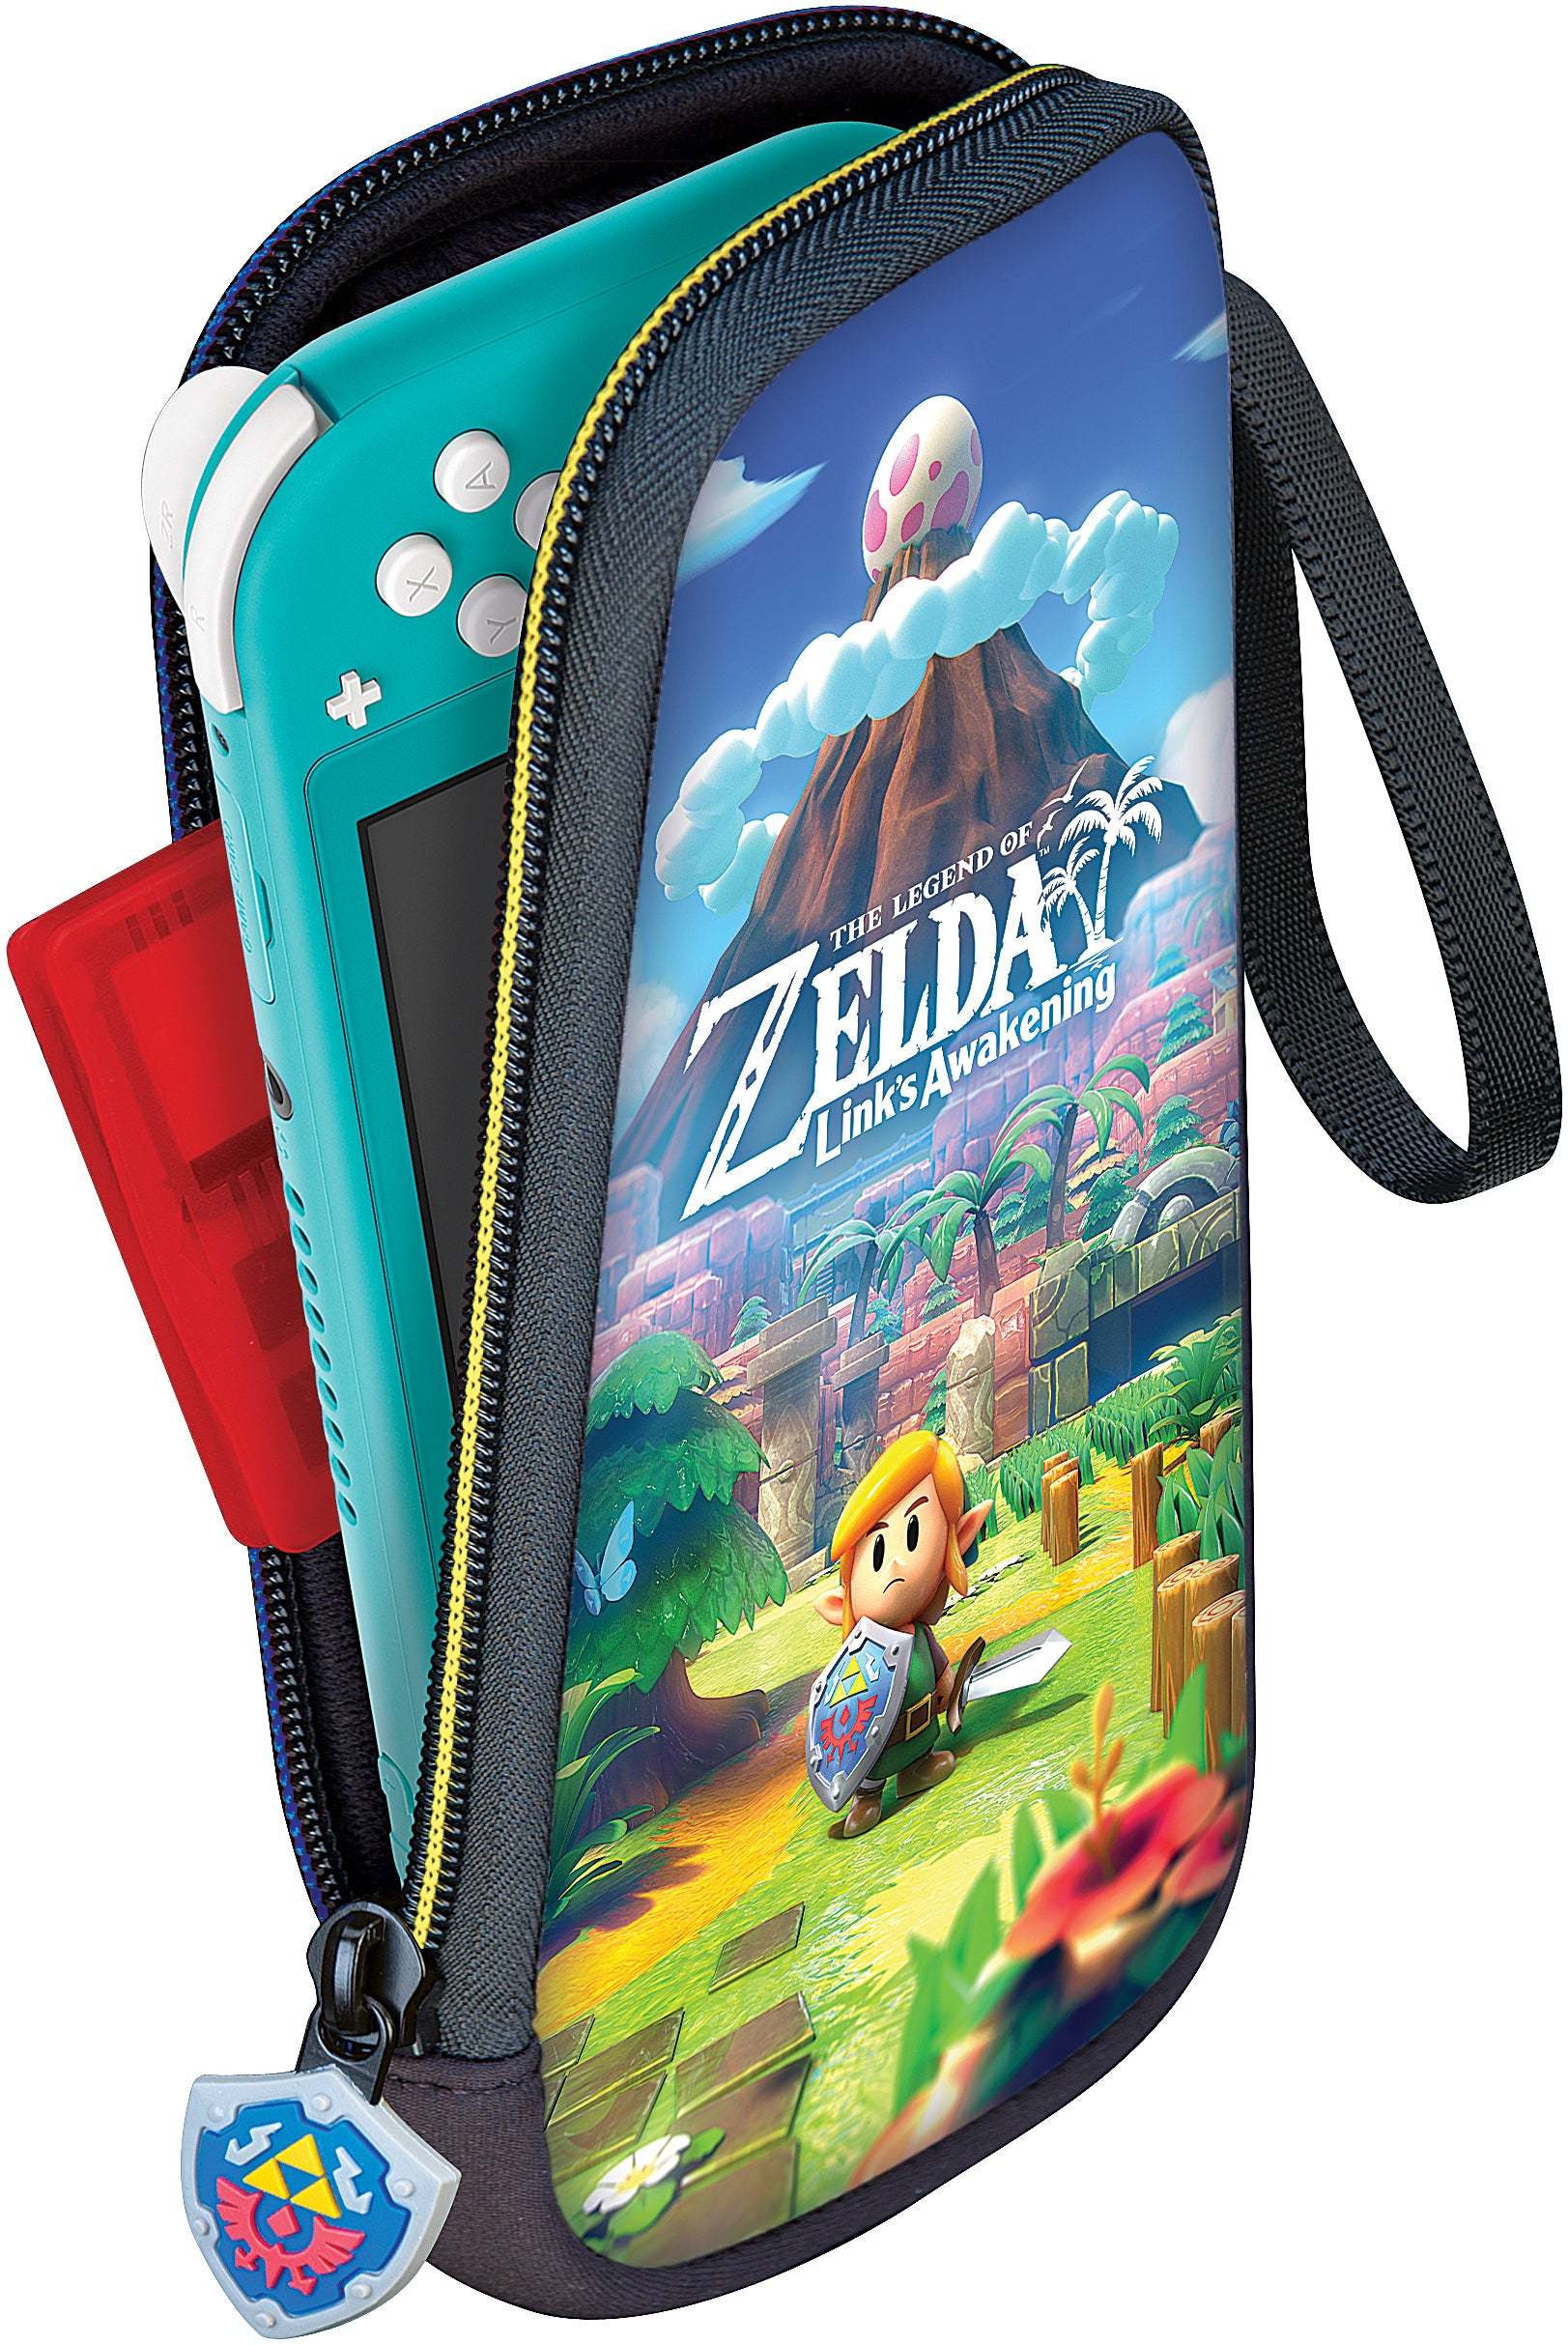 Nintendo Switch Lite Slim Travel Case - Link's Awakening - Bluemouth Direct